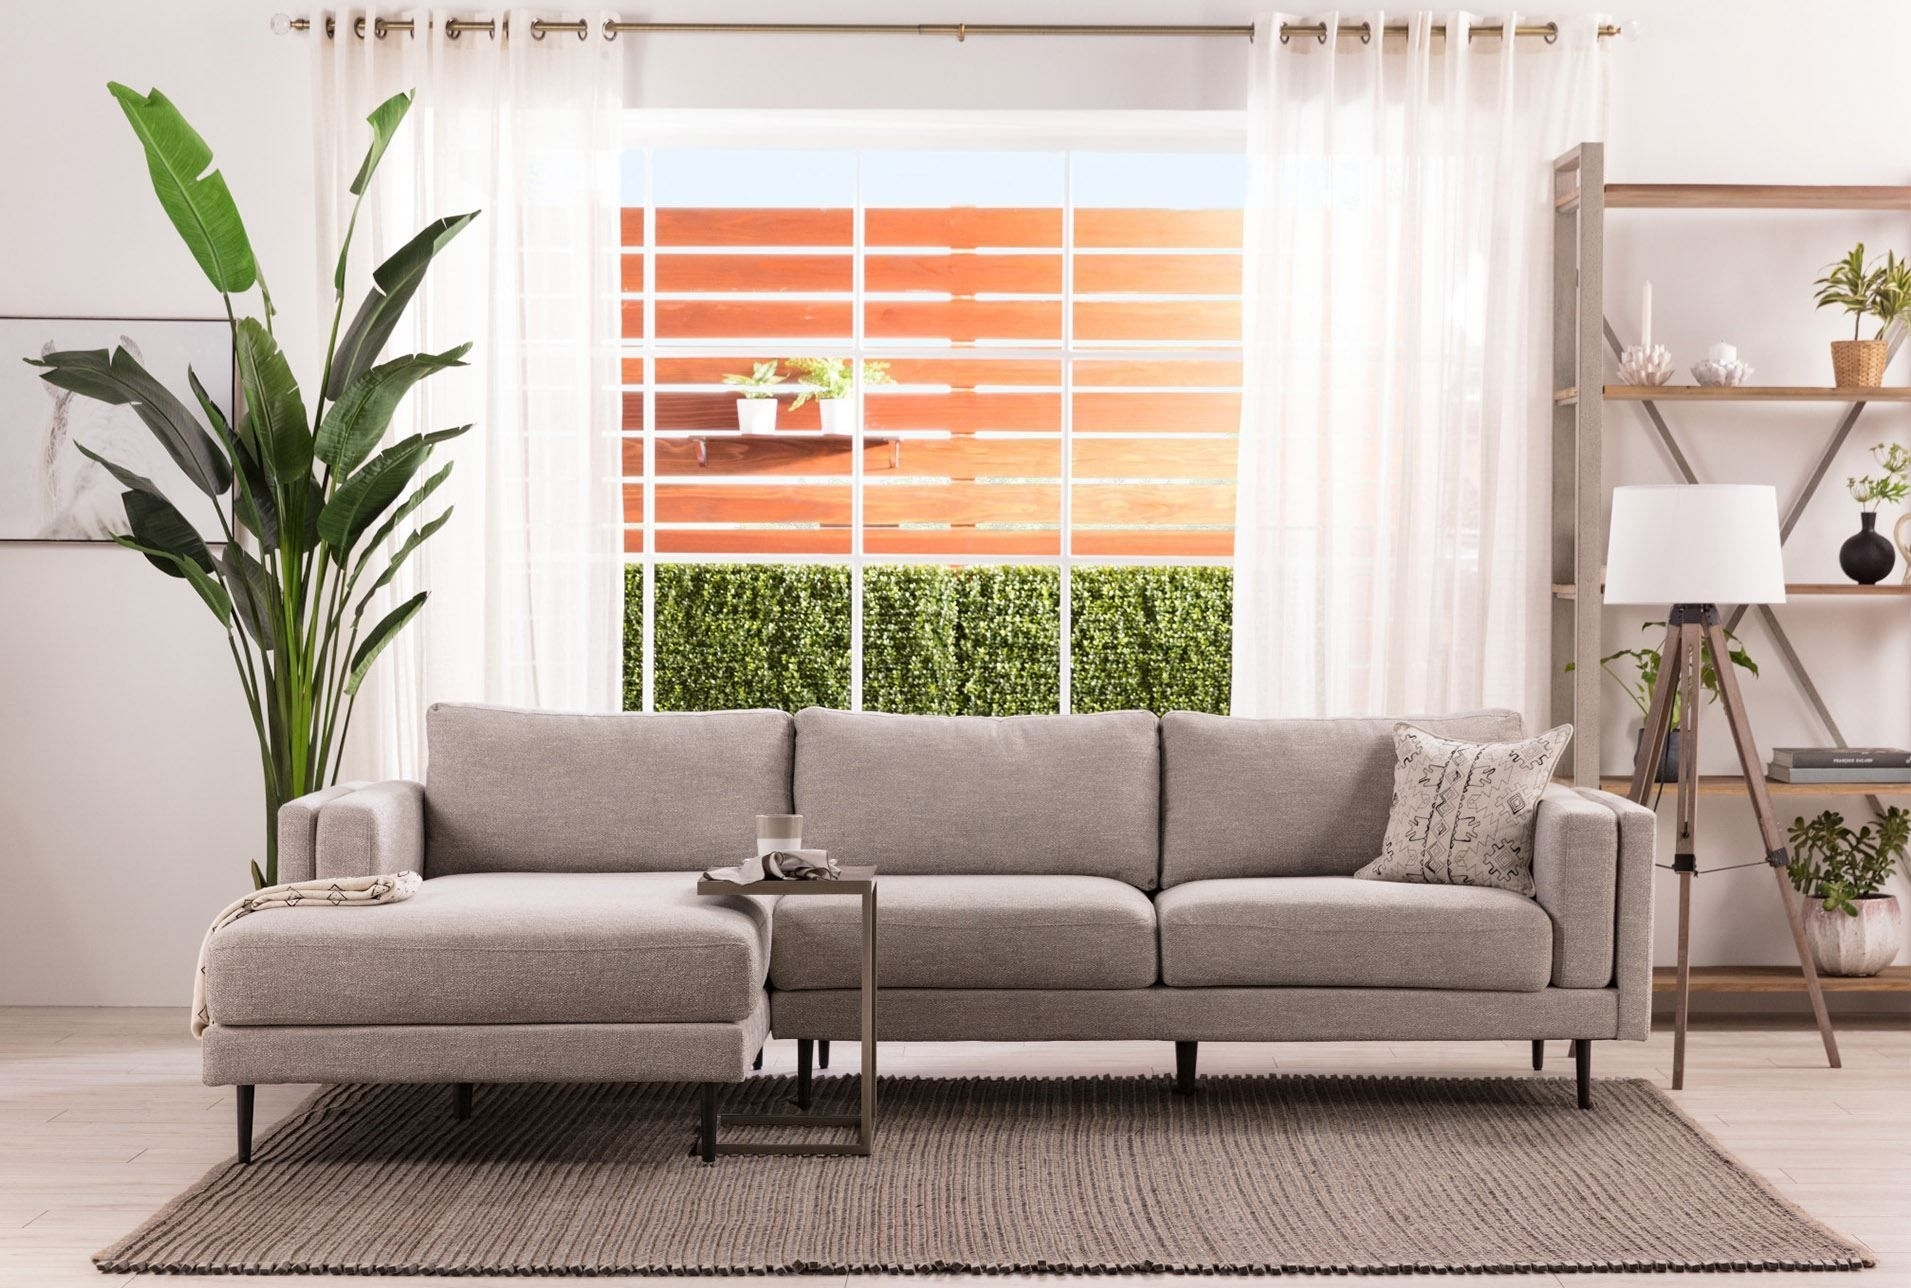 Aquarius Light Grey 2 Piece Sectional W/laf Chaise | Home With Aquarius Dark Grey 2 Piece Sectionals With Raf Chaise (View 4 of 25)